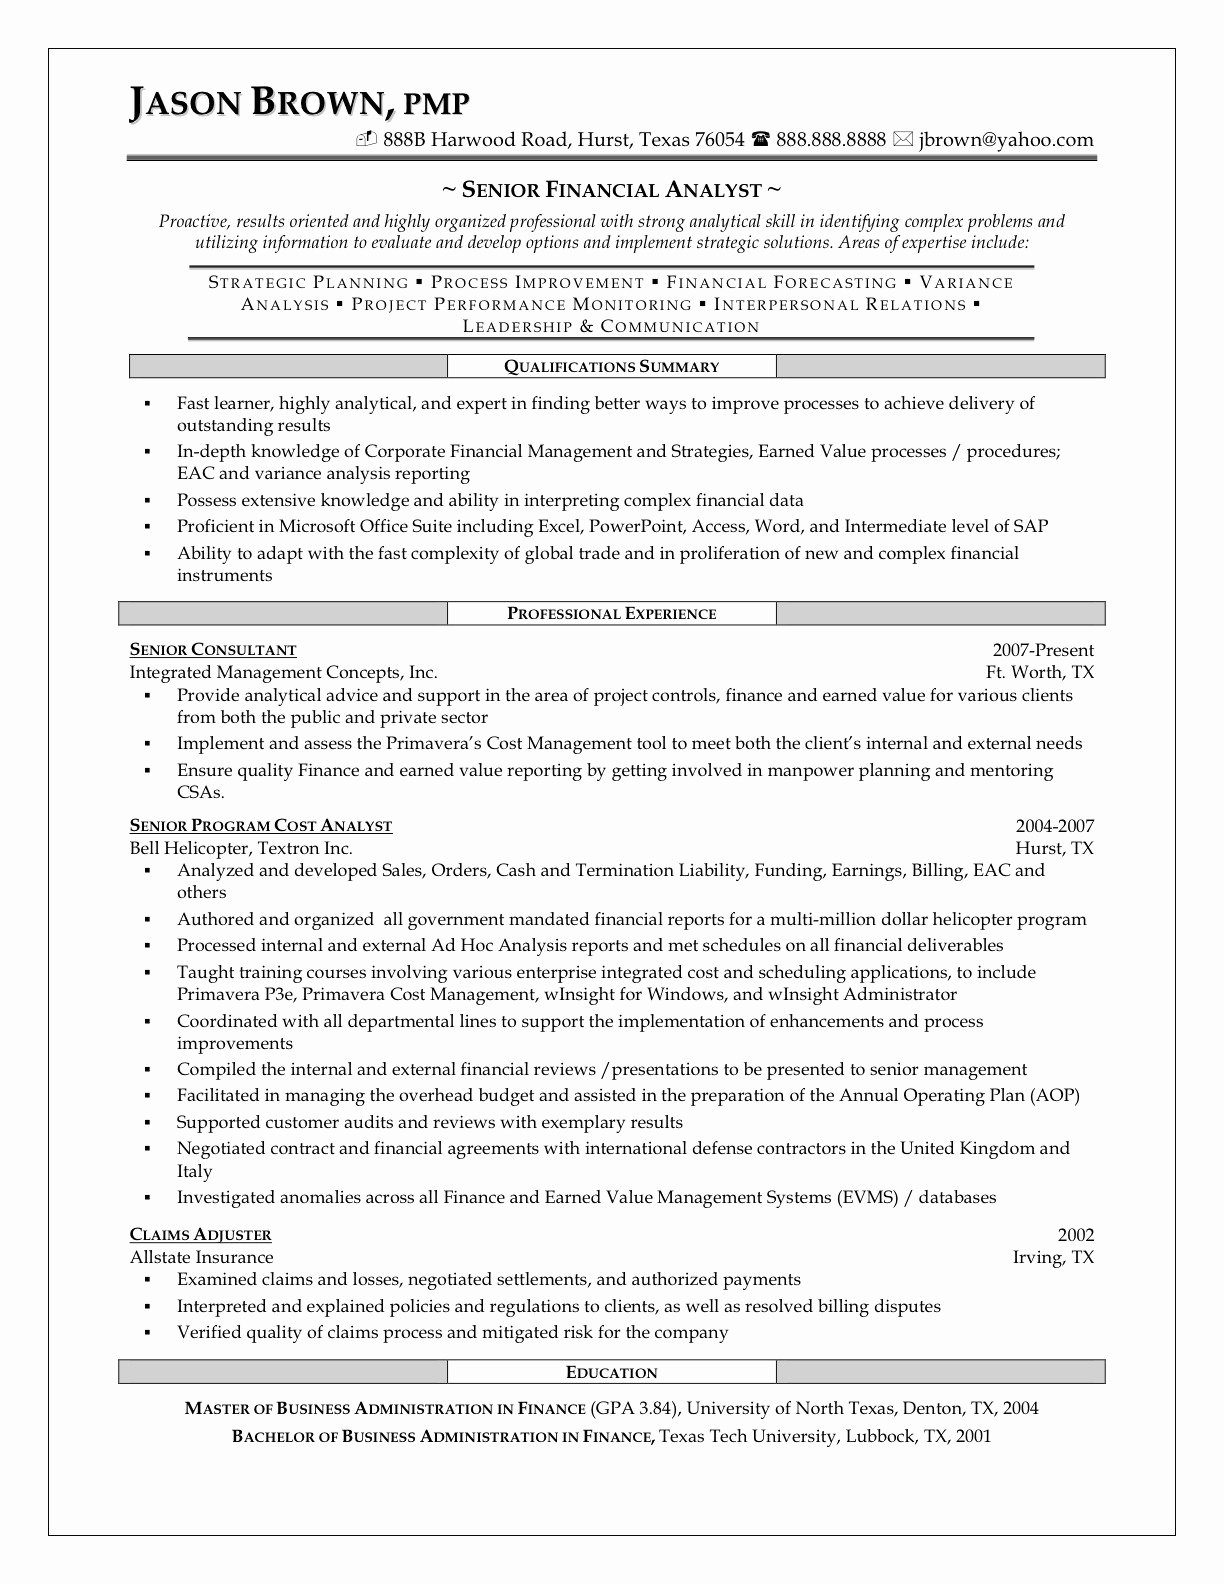 Best Financial Analyst Job Resume Sample